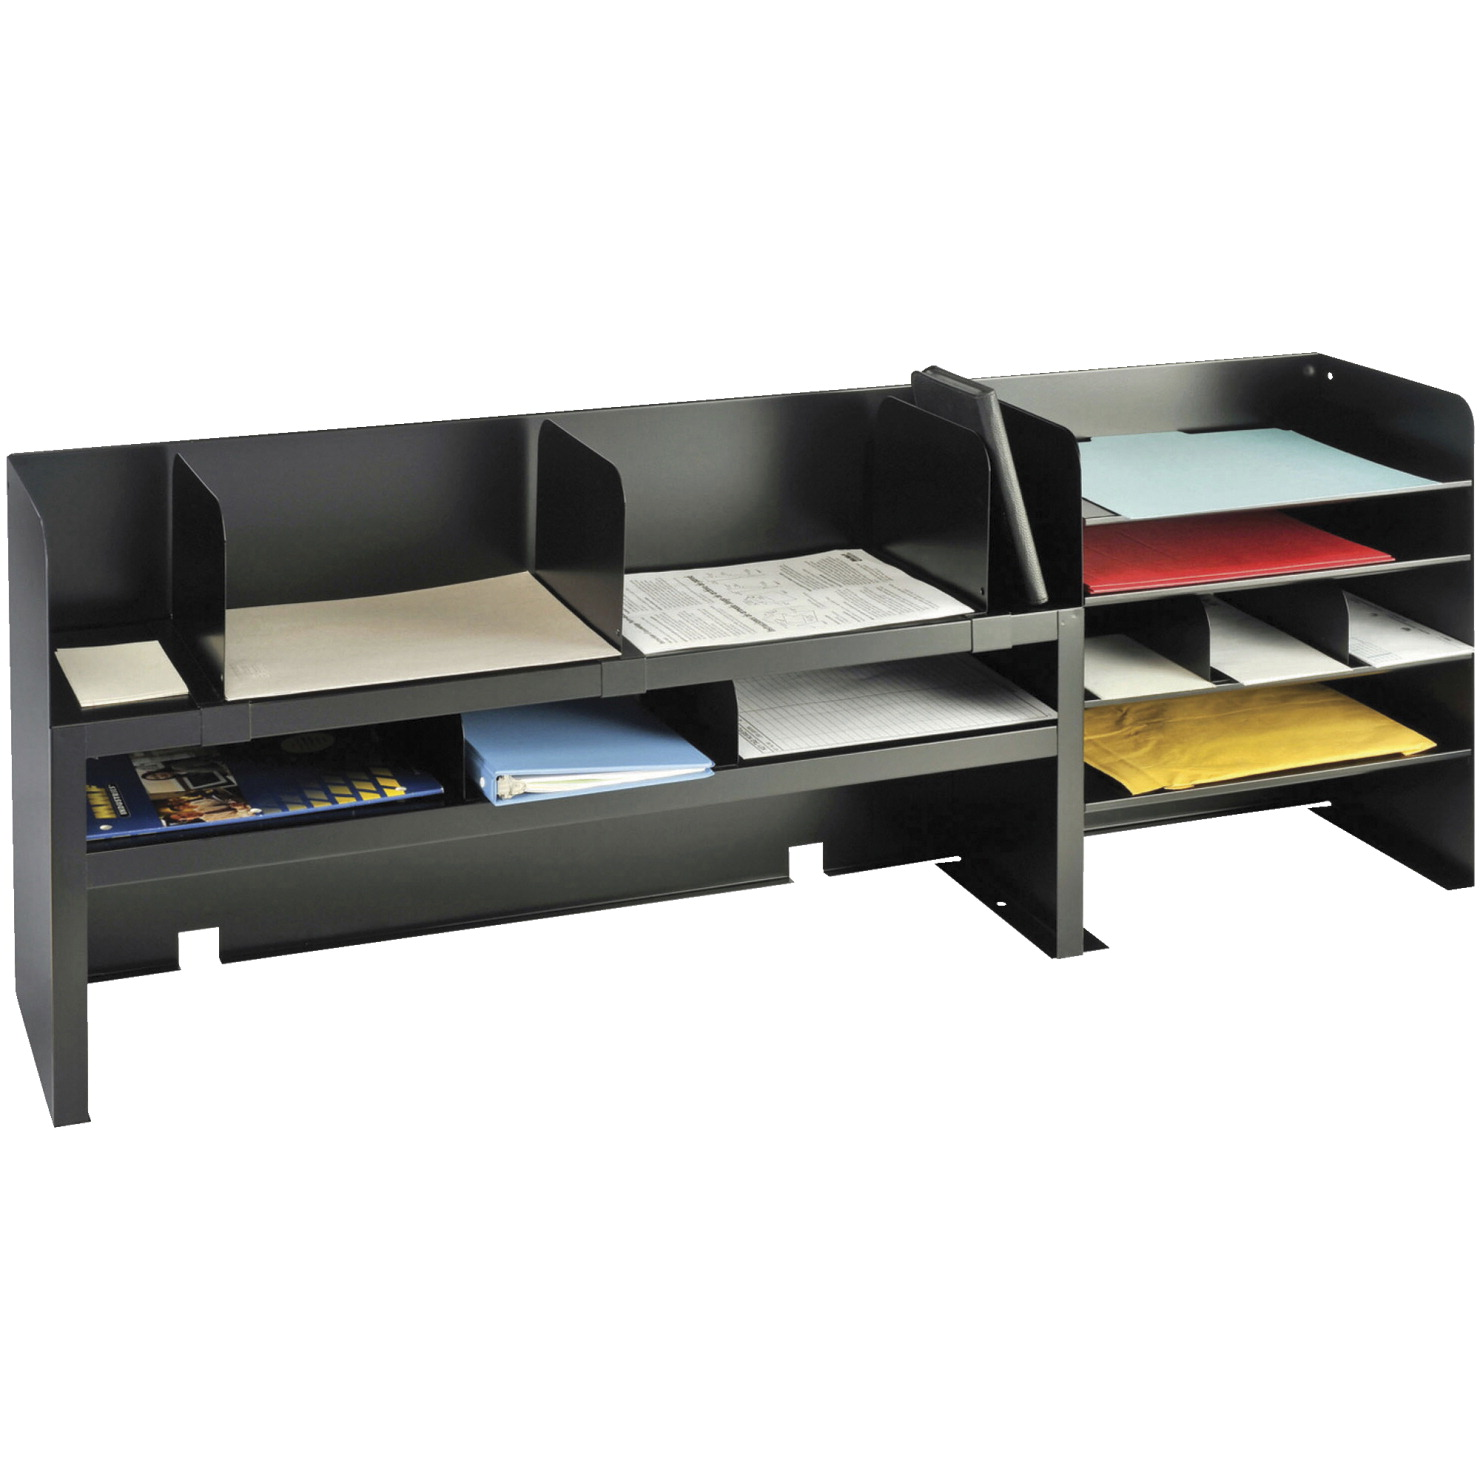 Mmf Industries Steelmaster Desktop Shelf Organizer With Movable Dividers 47 1 4 X